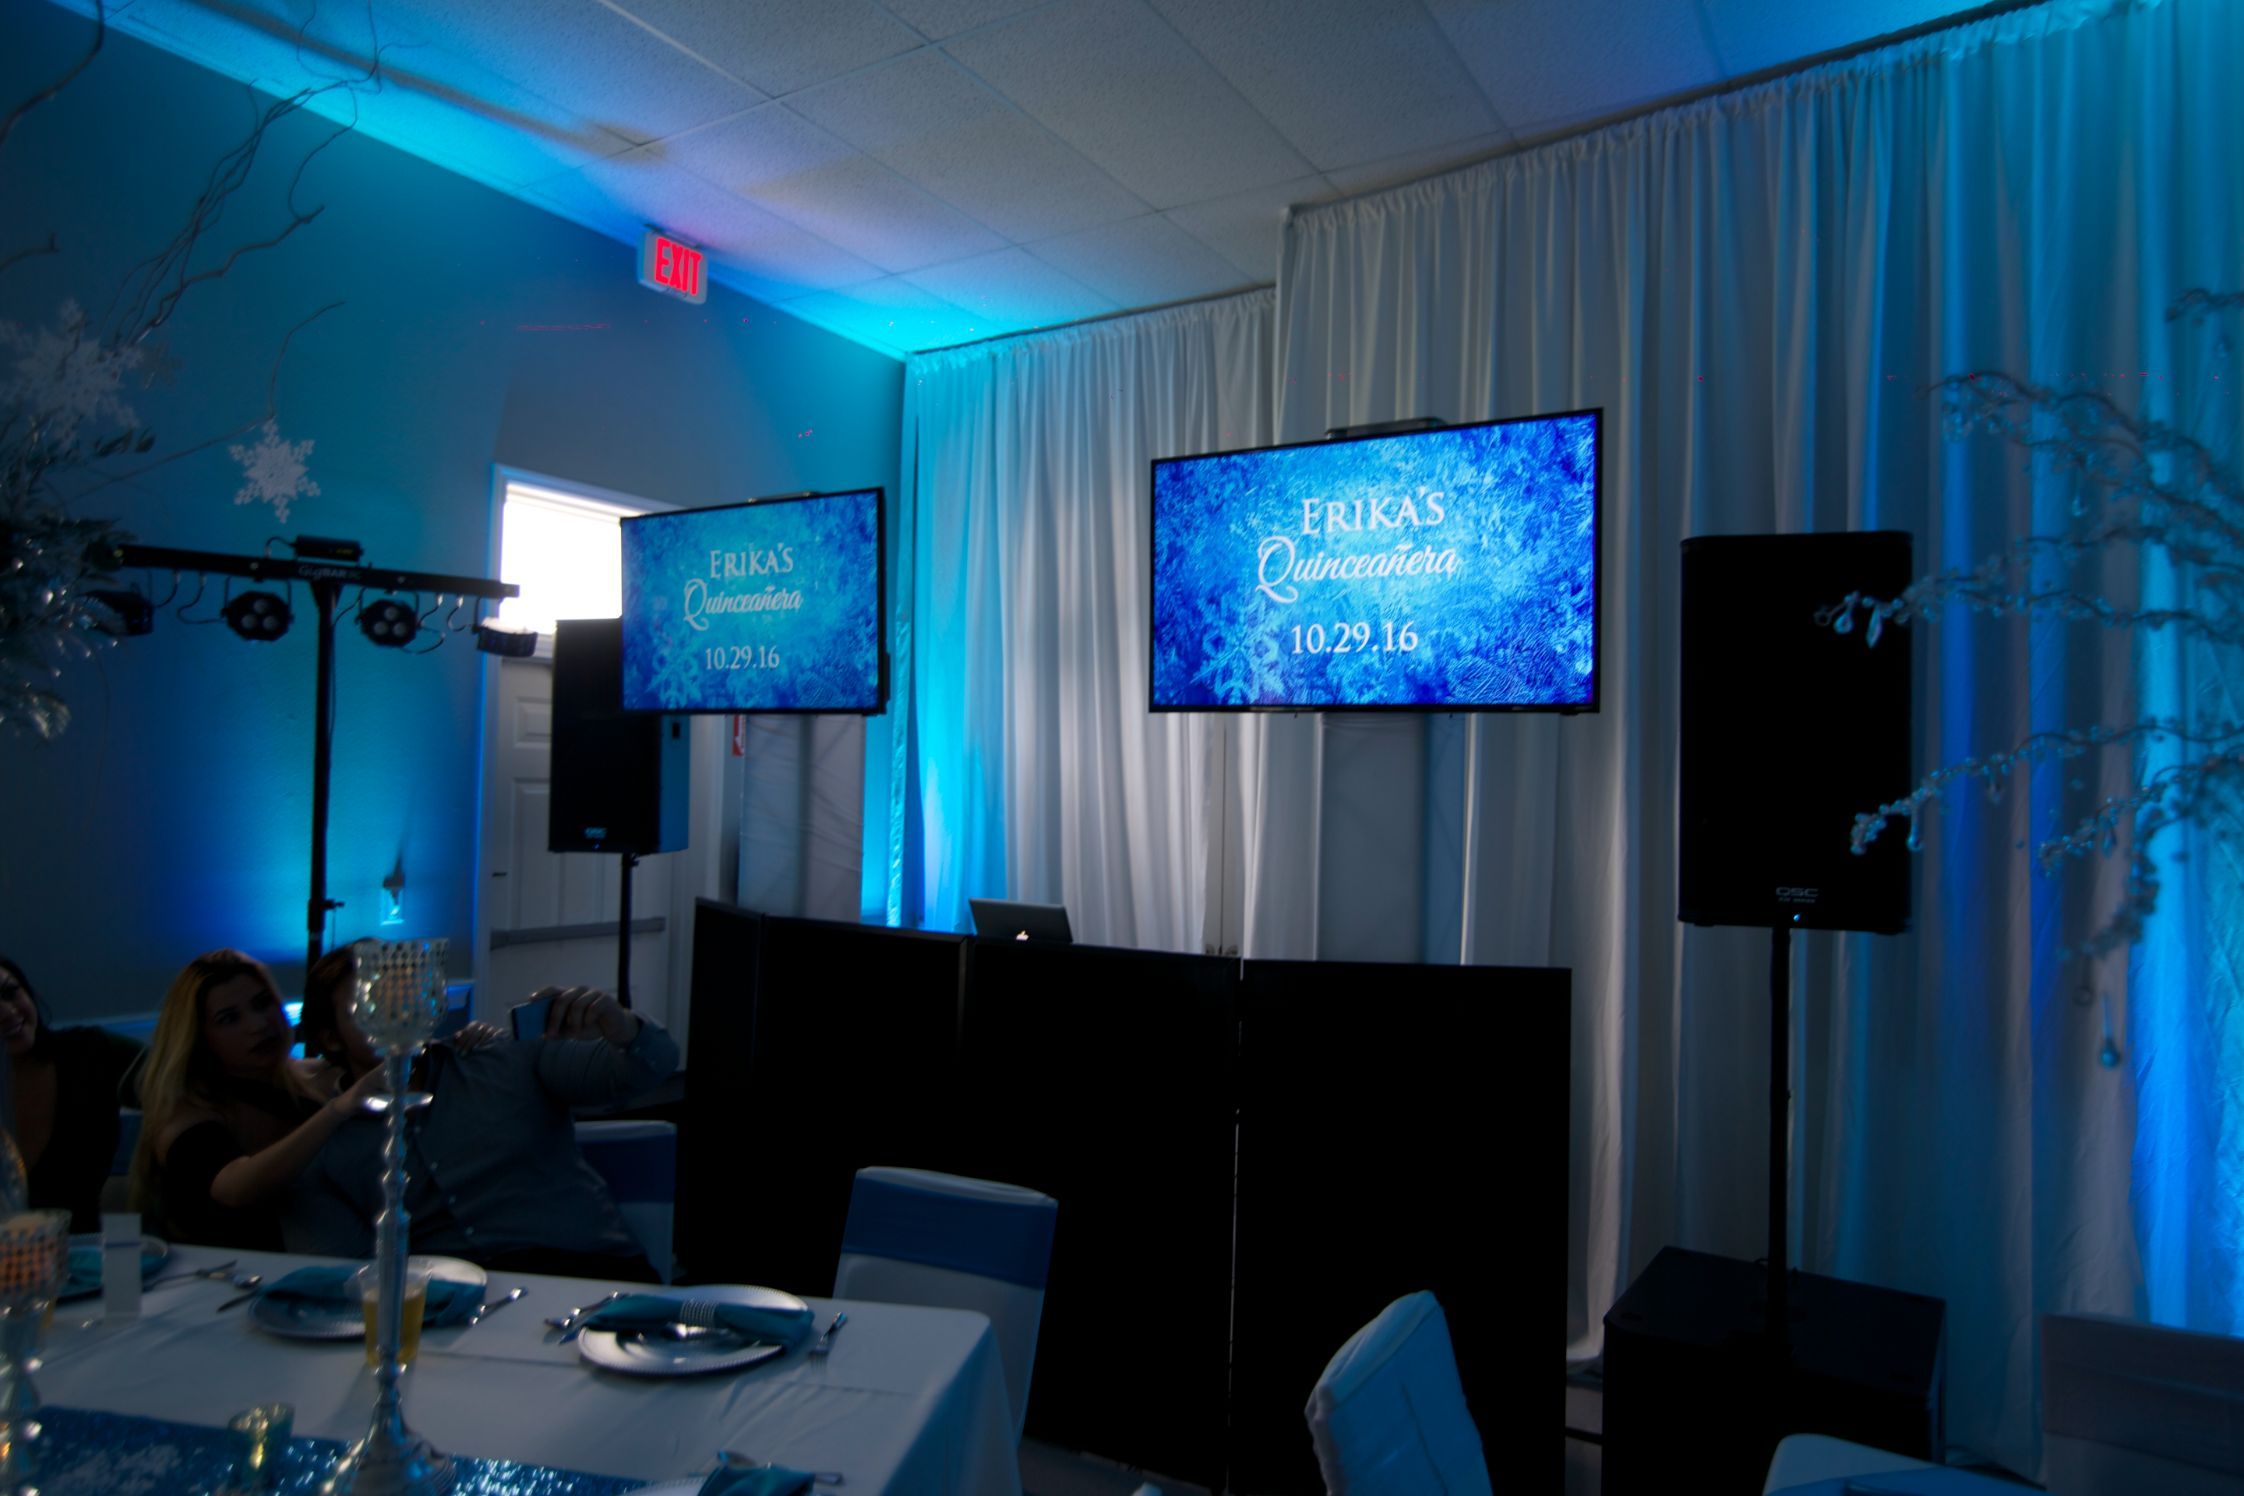 dual tv screens xclusive deejays winter springs florida wedding dj lighting photo booth entertainment